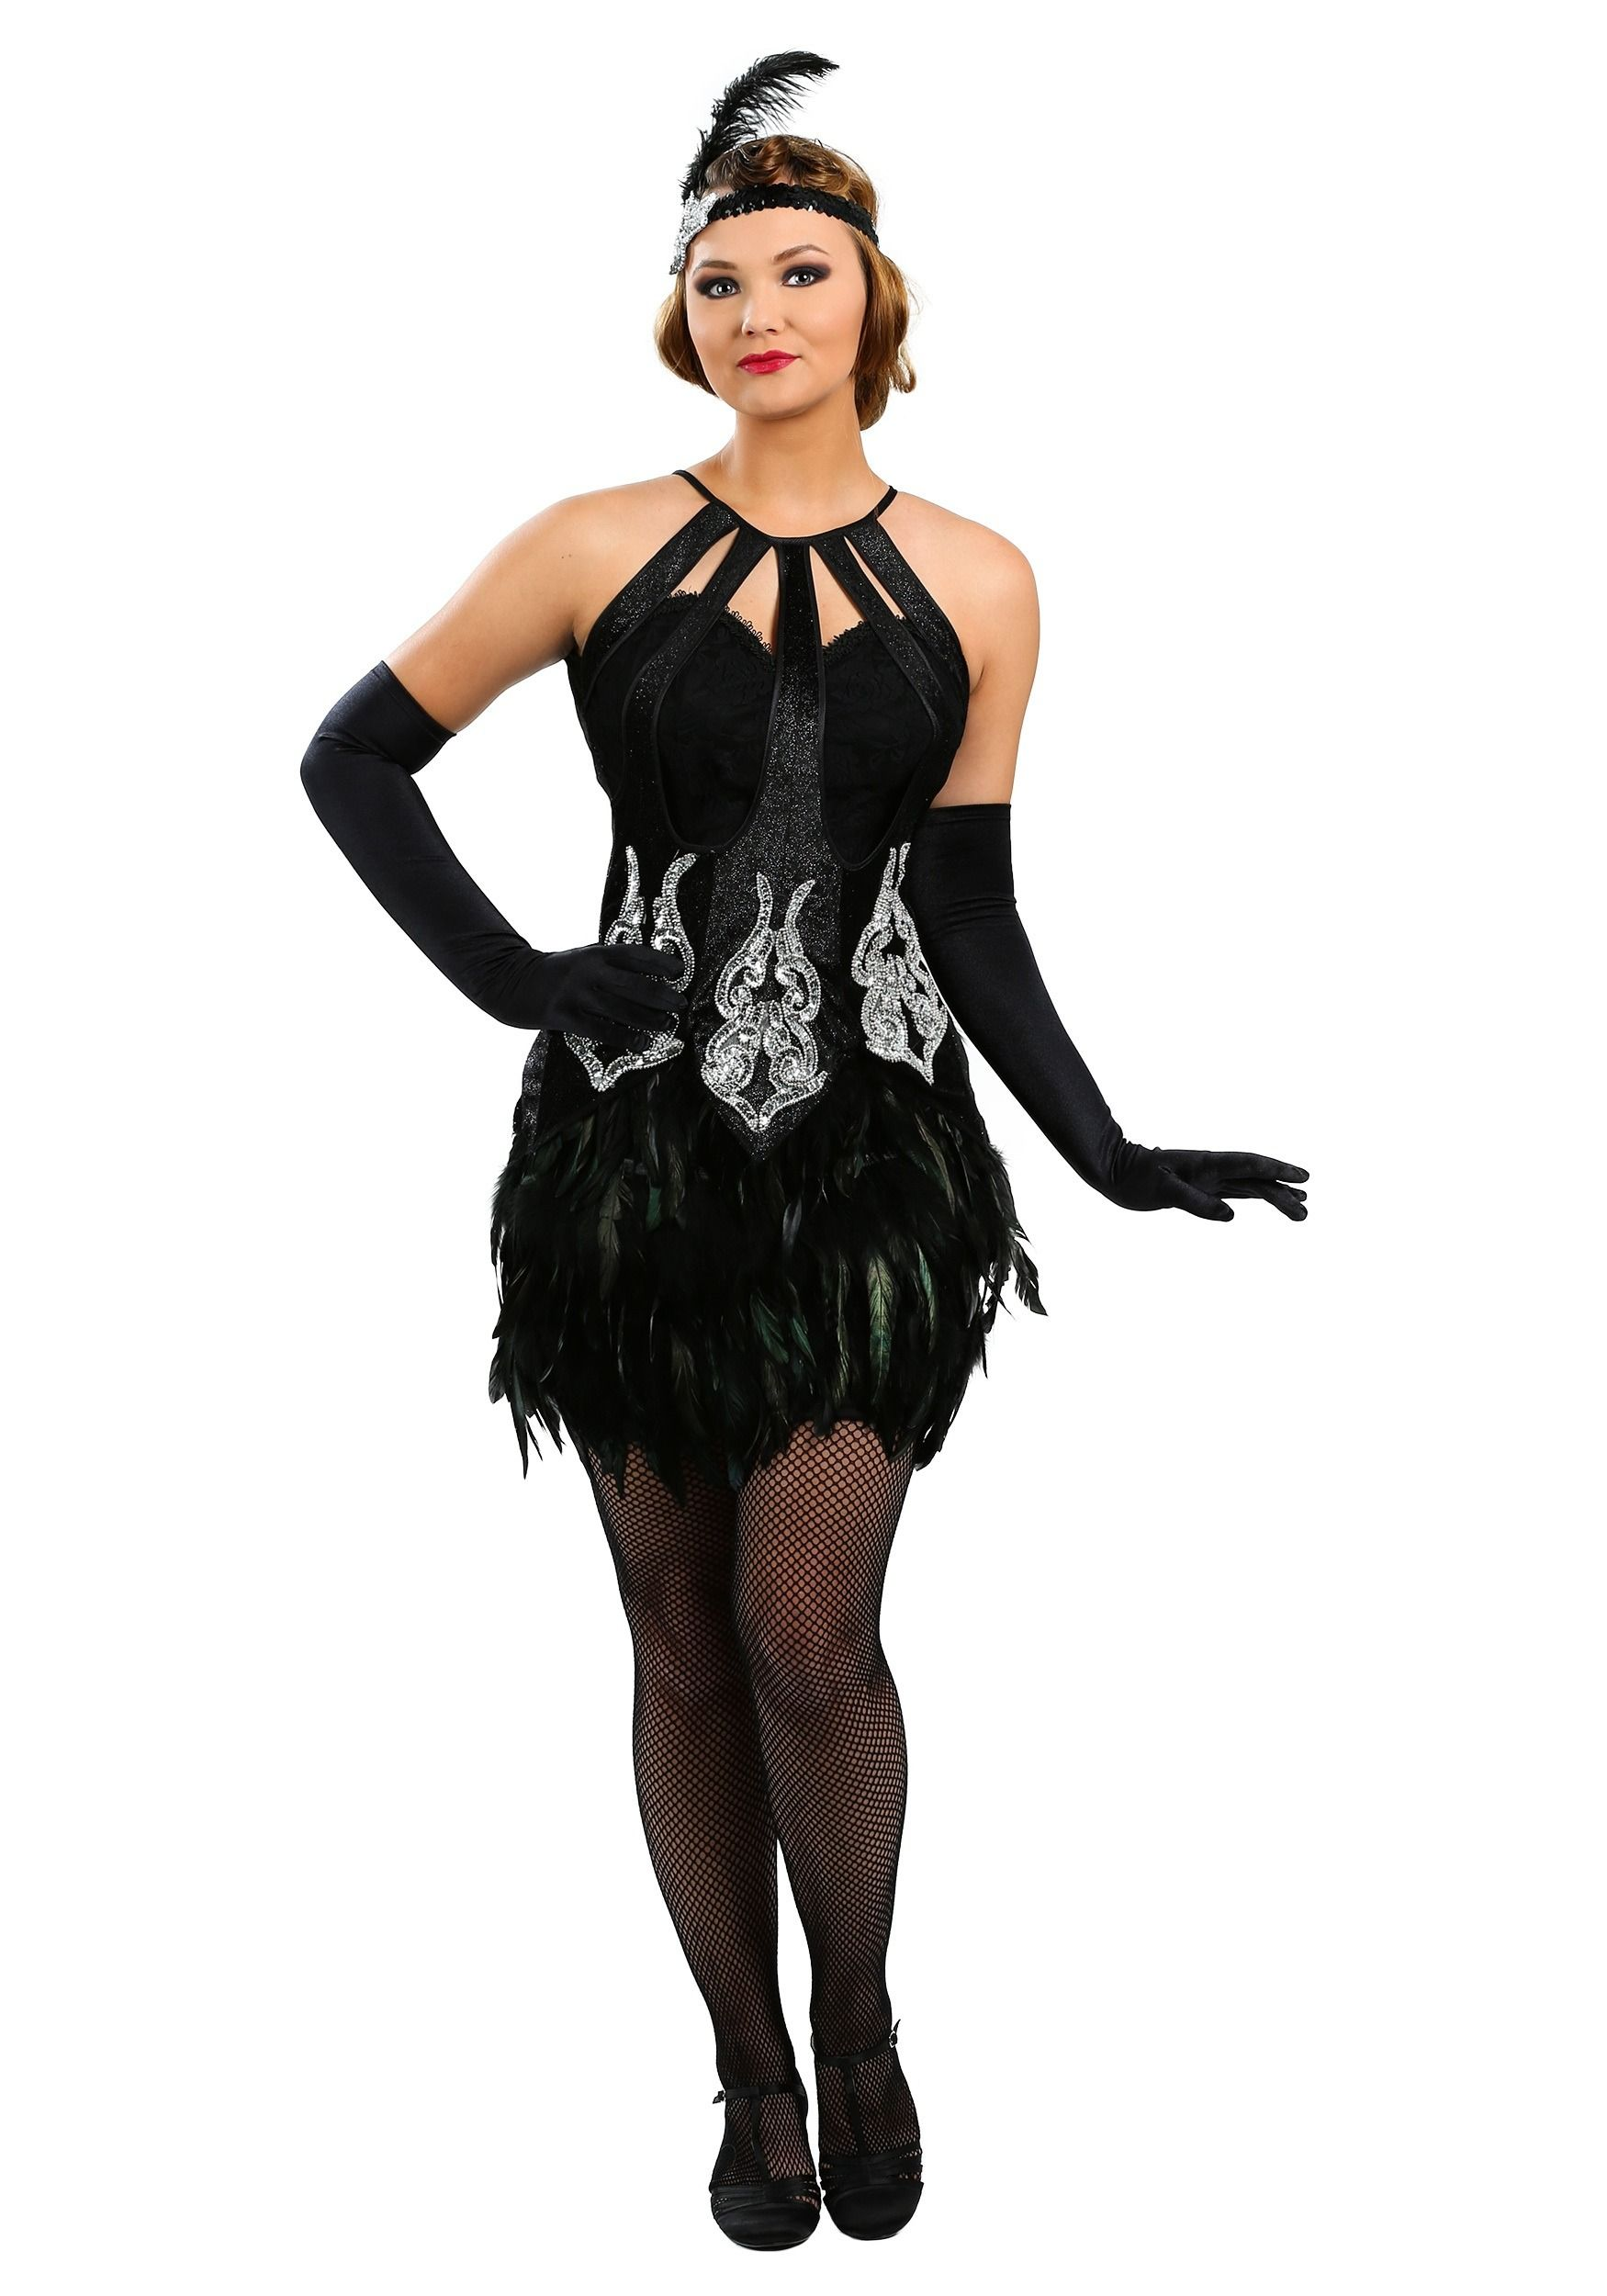 Great Gatsby Outfits Female Tenuestyle Great Gatsby Vintage Fashion Outfits Back Into Trendy